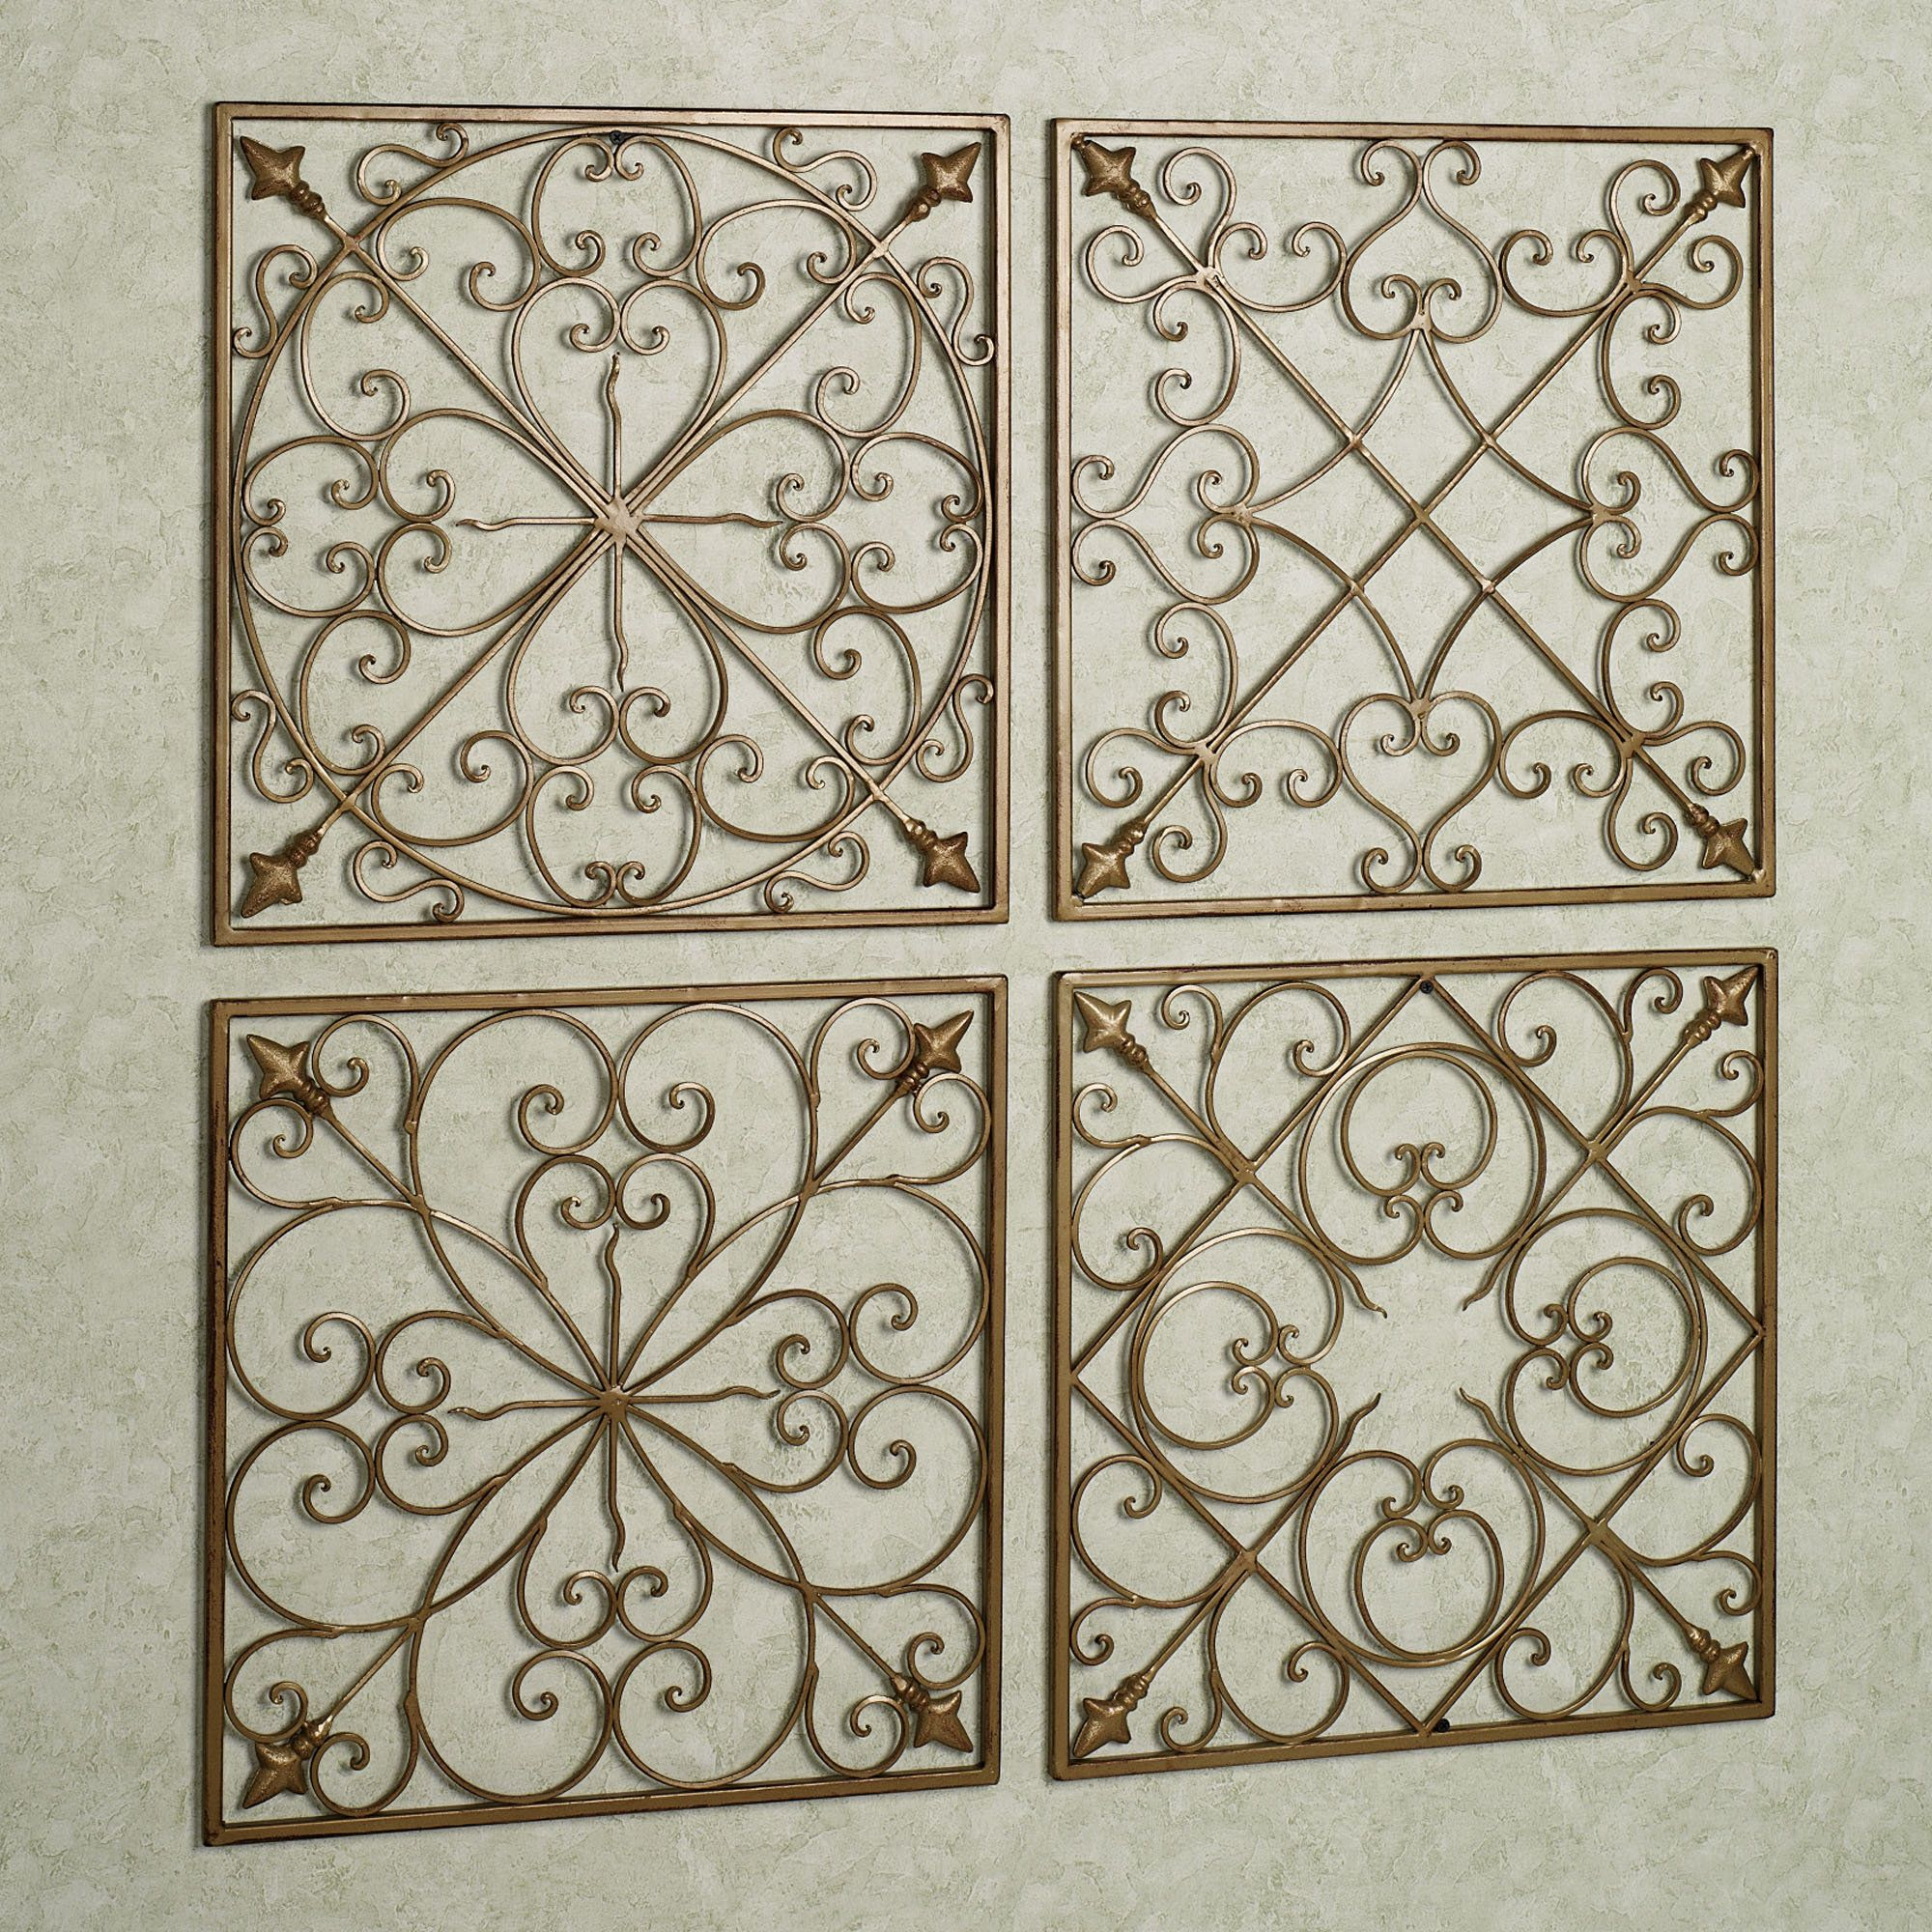 Wrought Iron Wall Grille Lachandra Satin Gold Iron Square Wall Grille Set  Wrought Iron